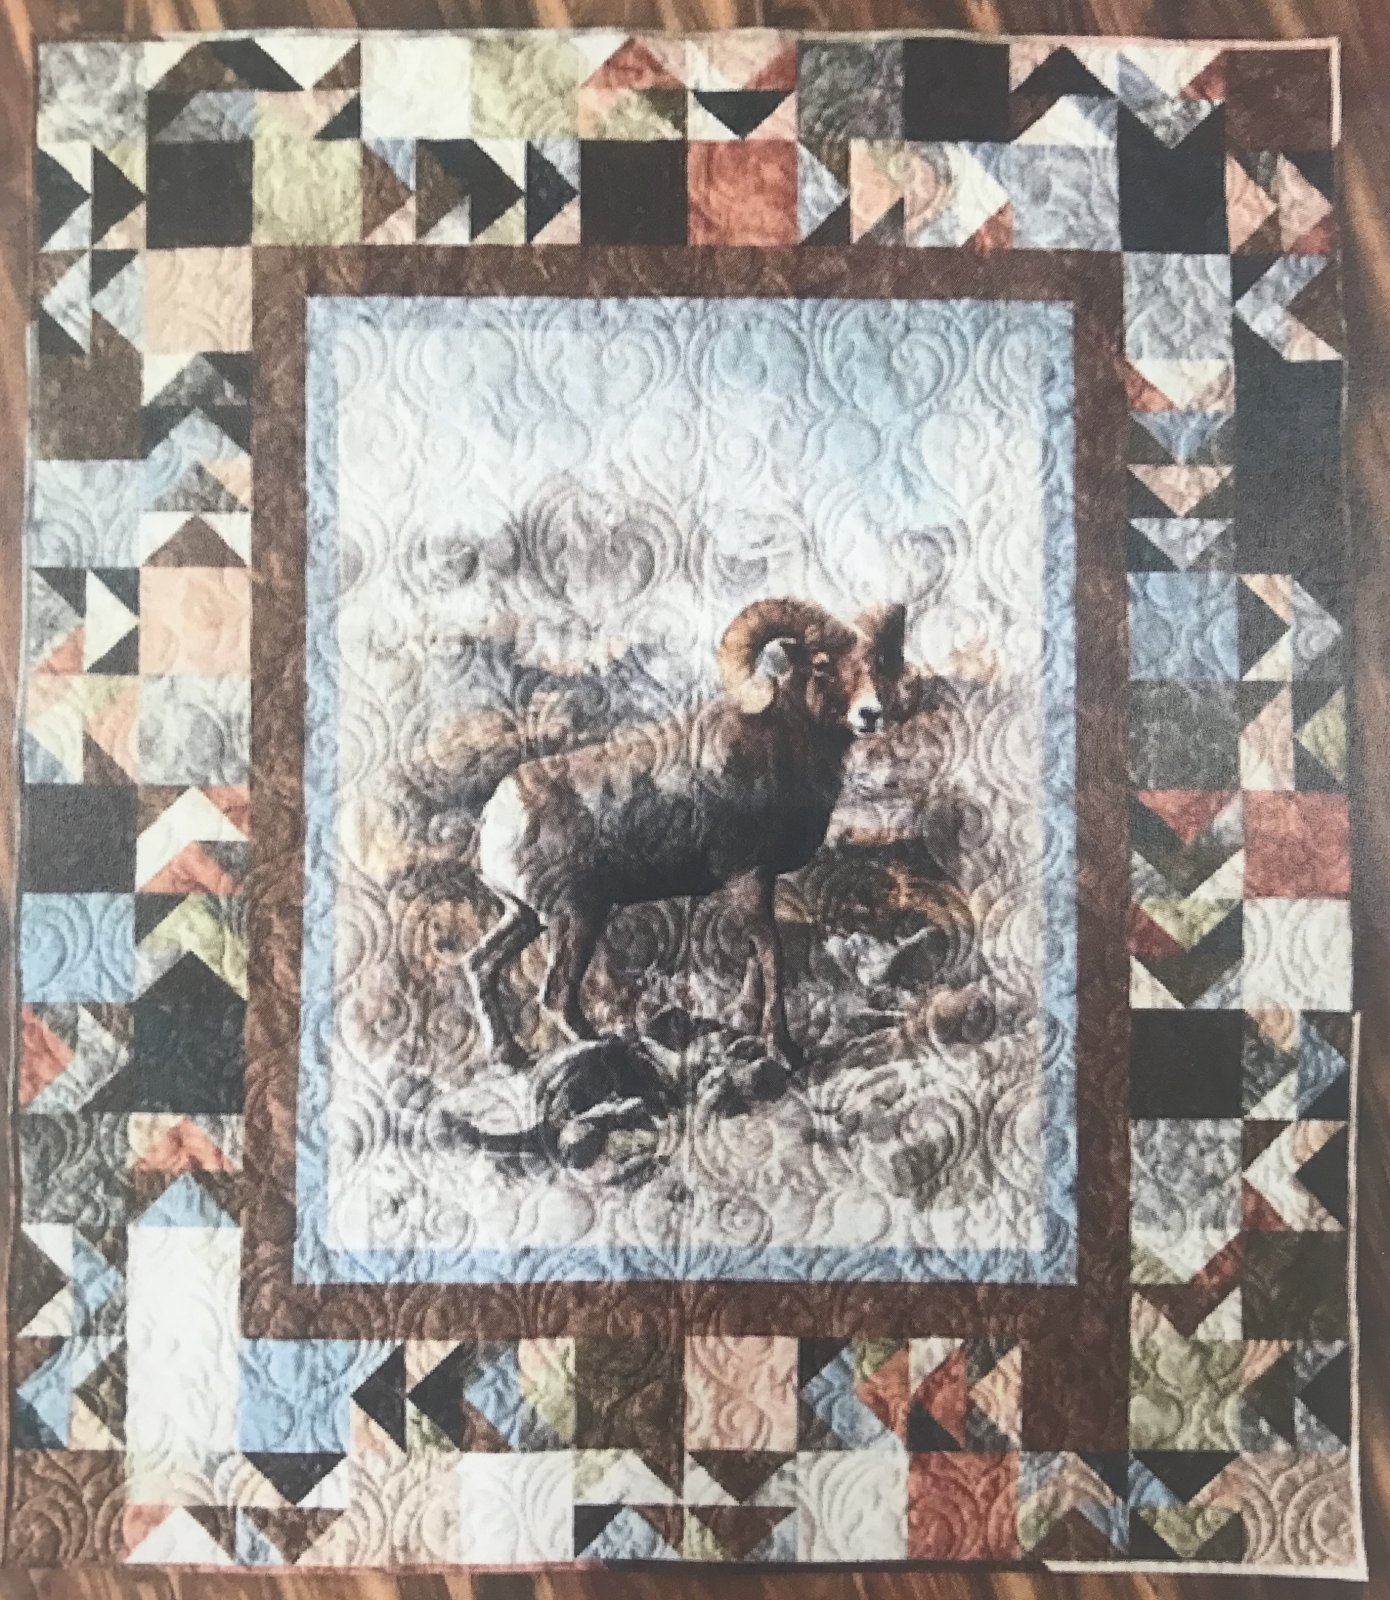 BIg Horn Sheep Quilt